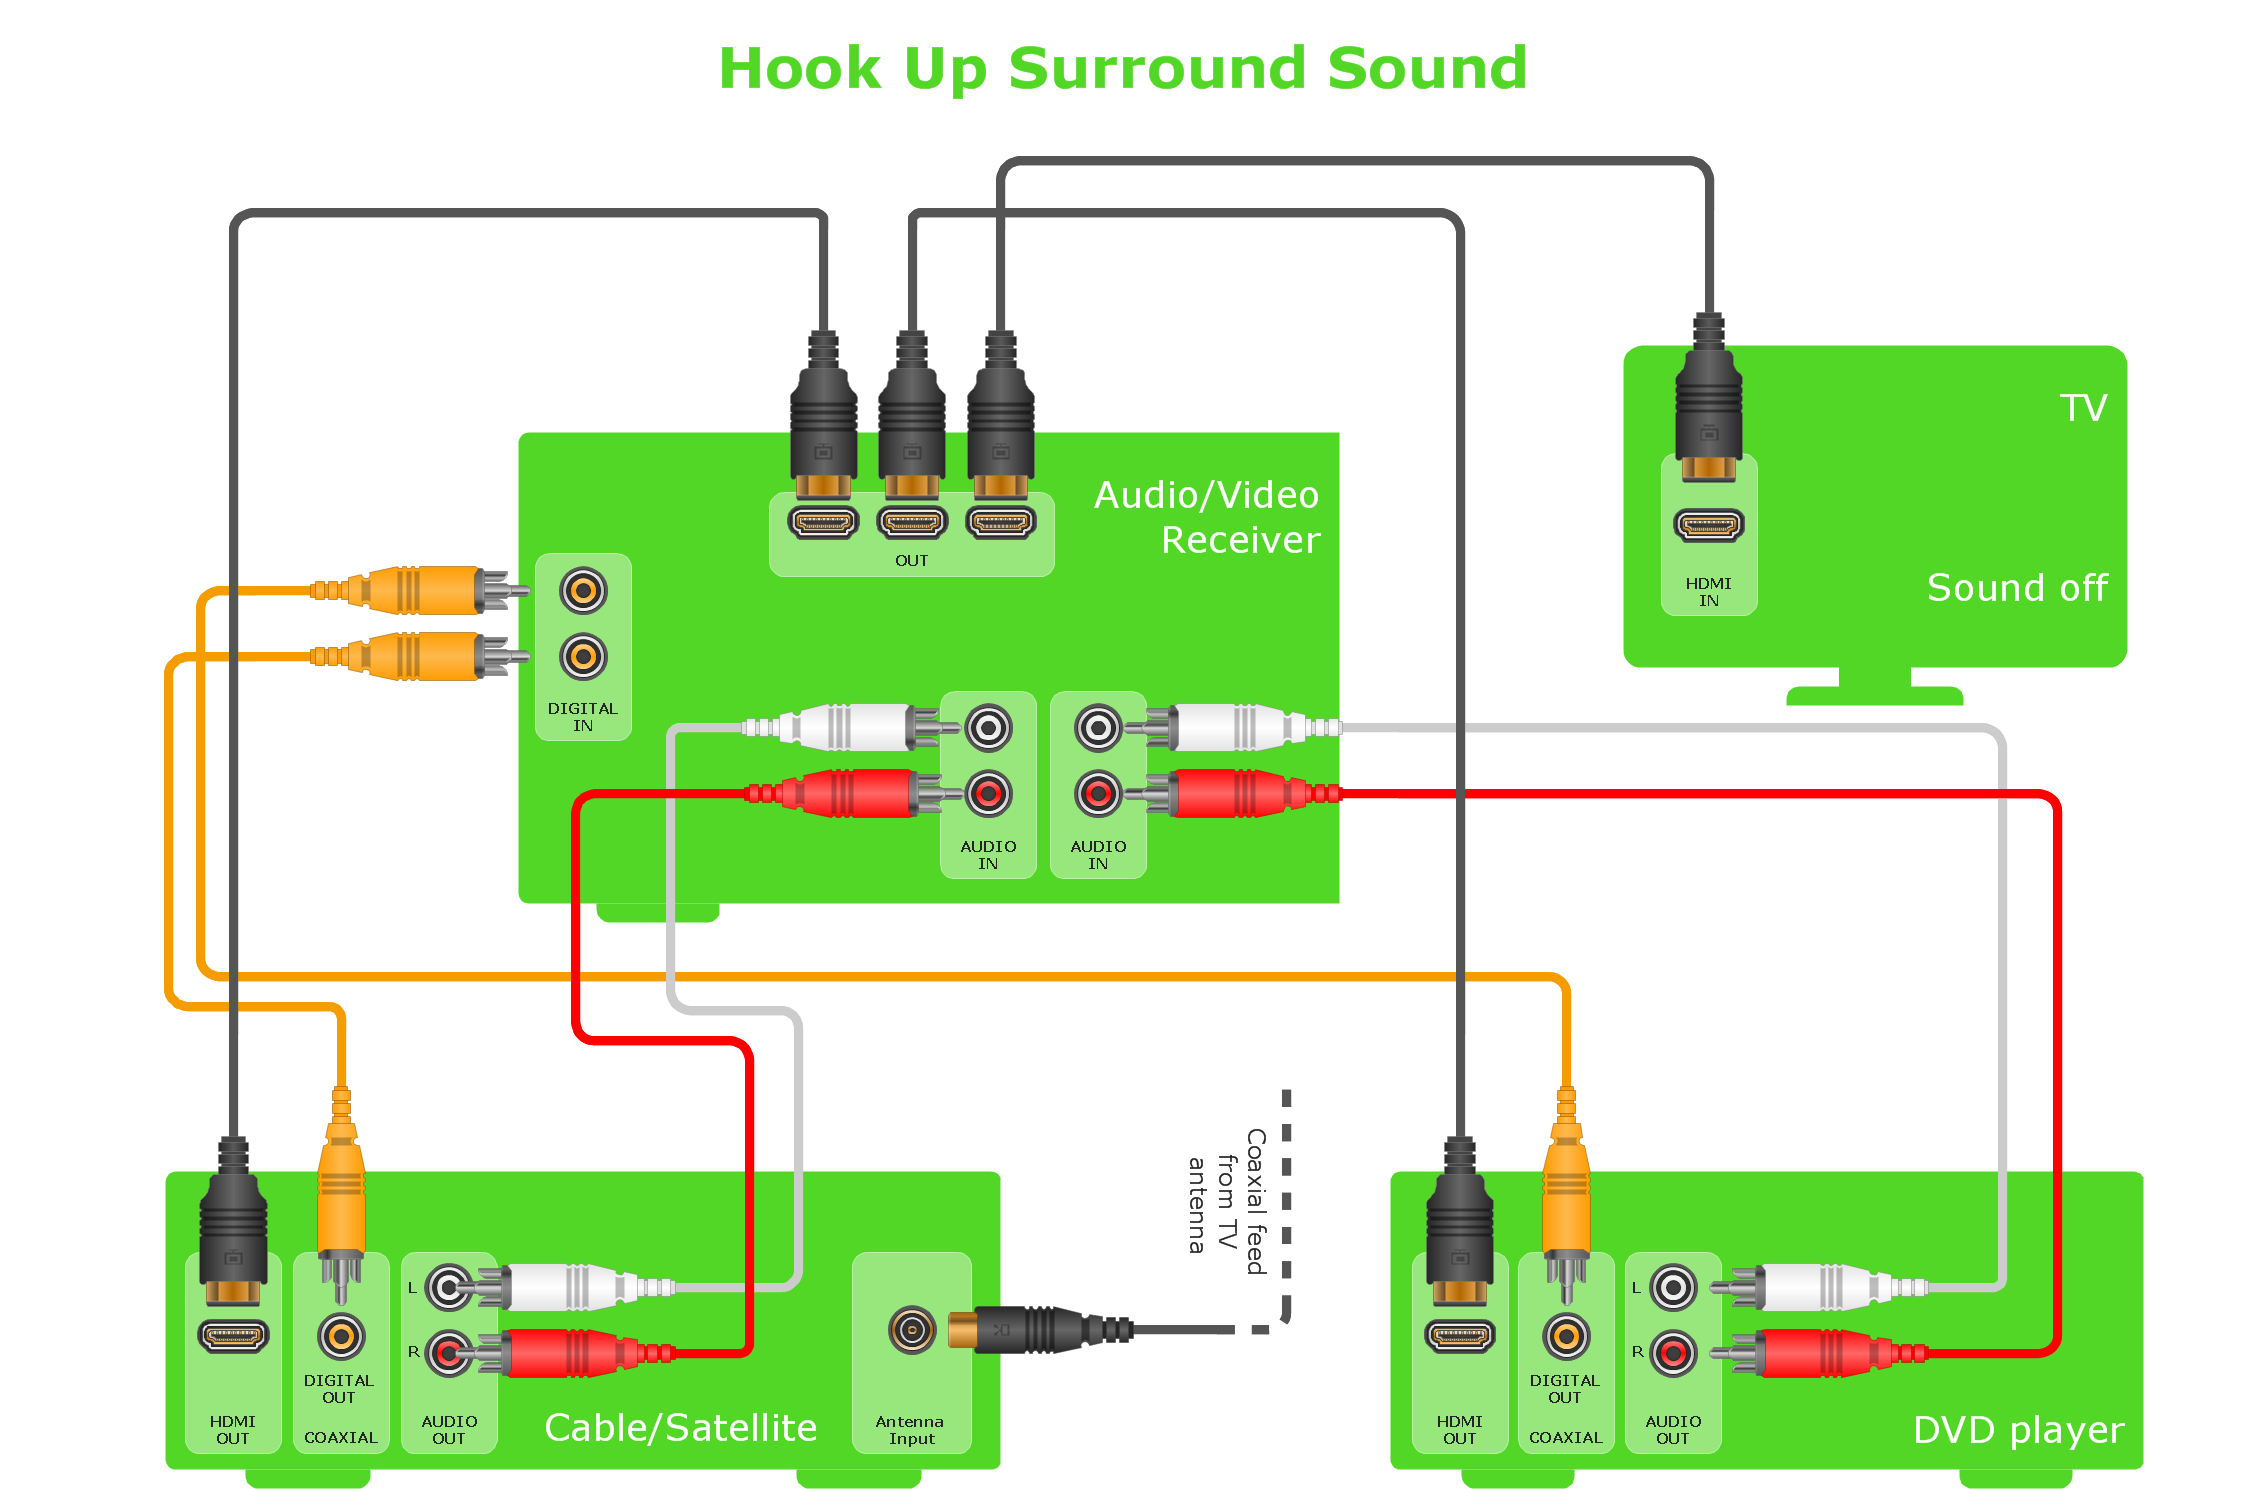 wiring diagram conceptdraw pro hookup diagram home entertainment system surround sound